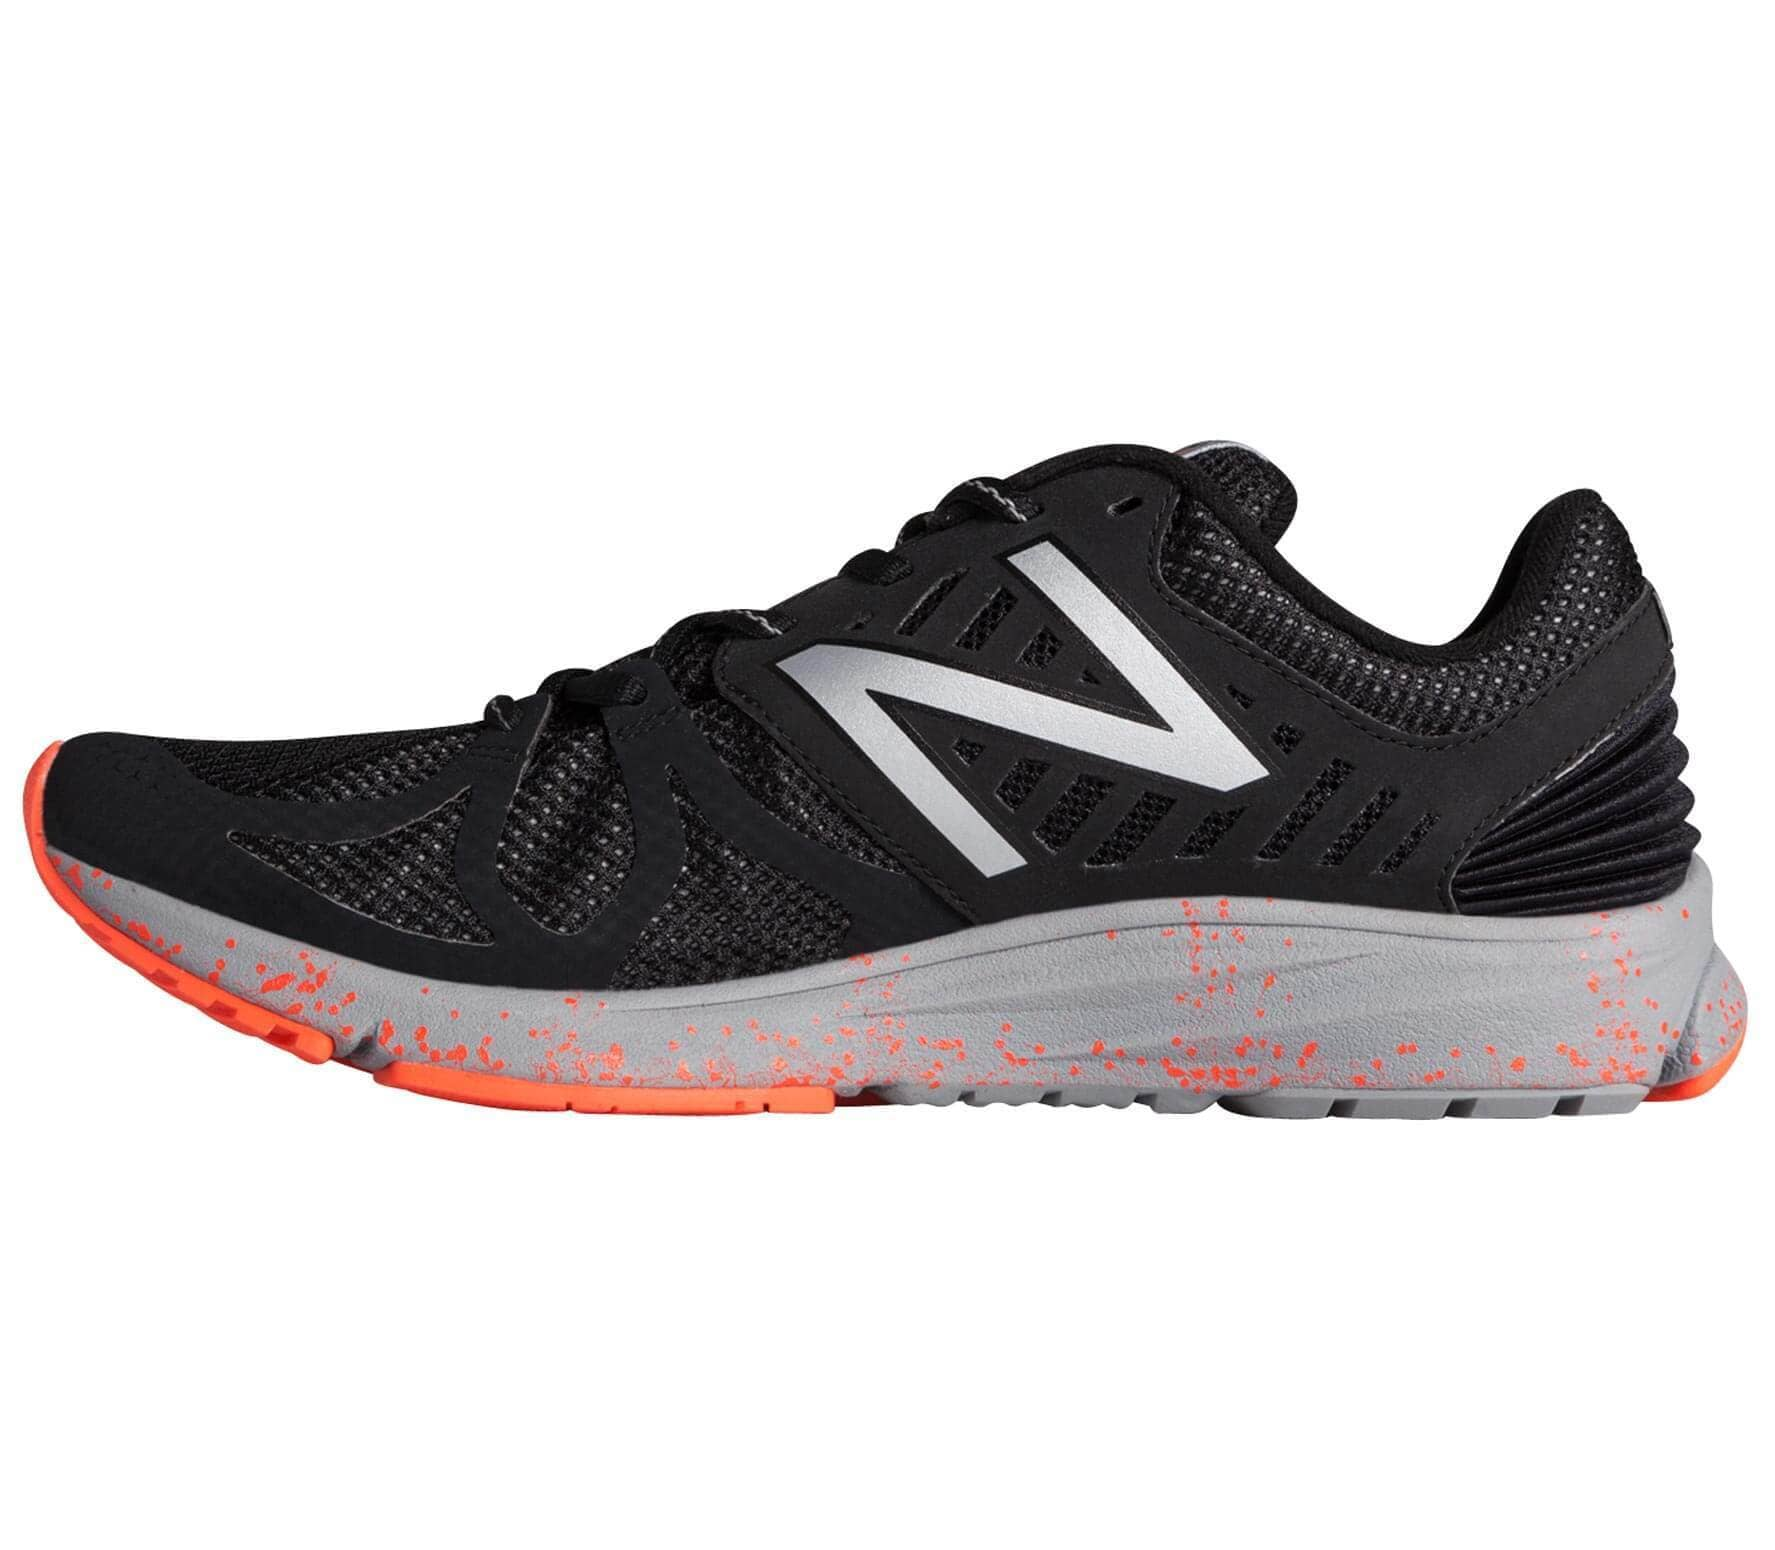 New Balance Men S Cycling Shoes